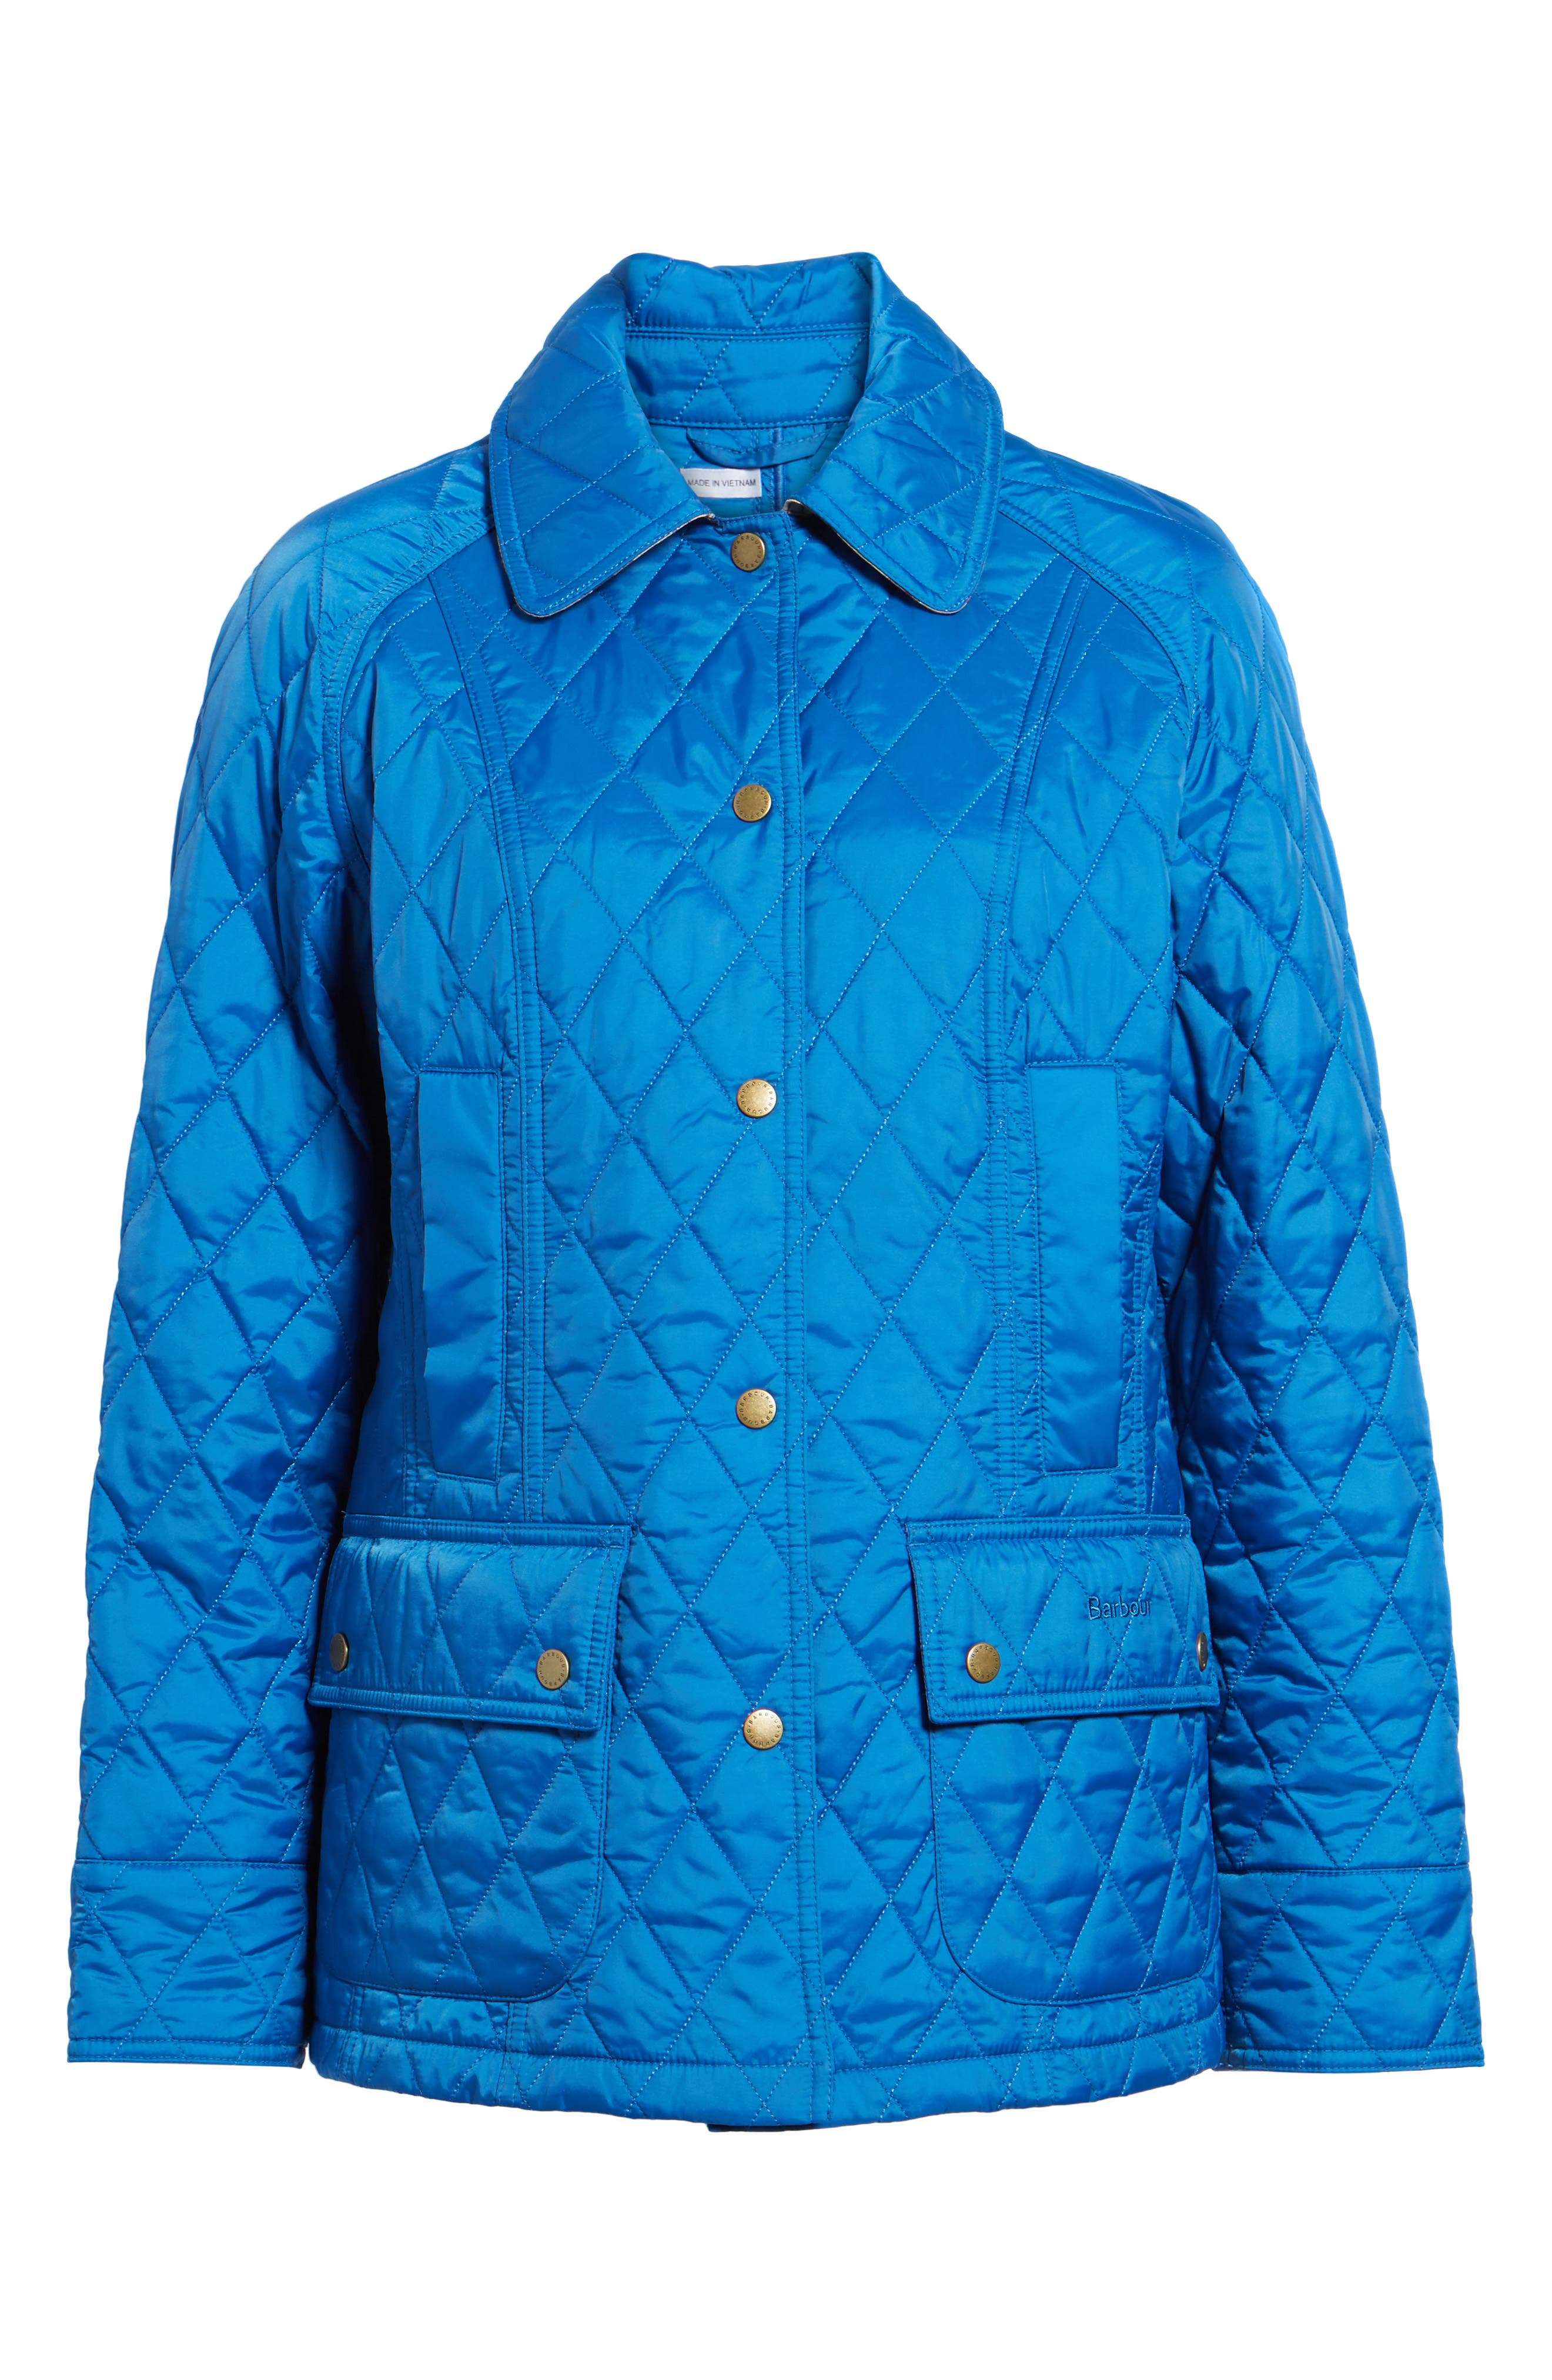 'Beadnell - Summer' Quilted Jacket,                             Alternate thumbnail 5, color,                             450